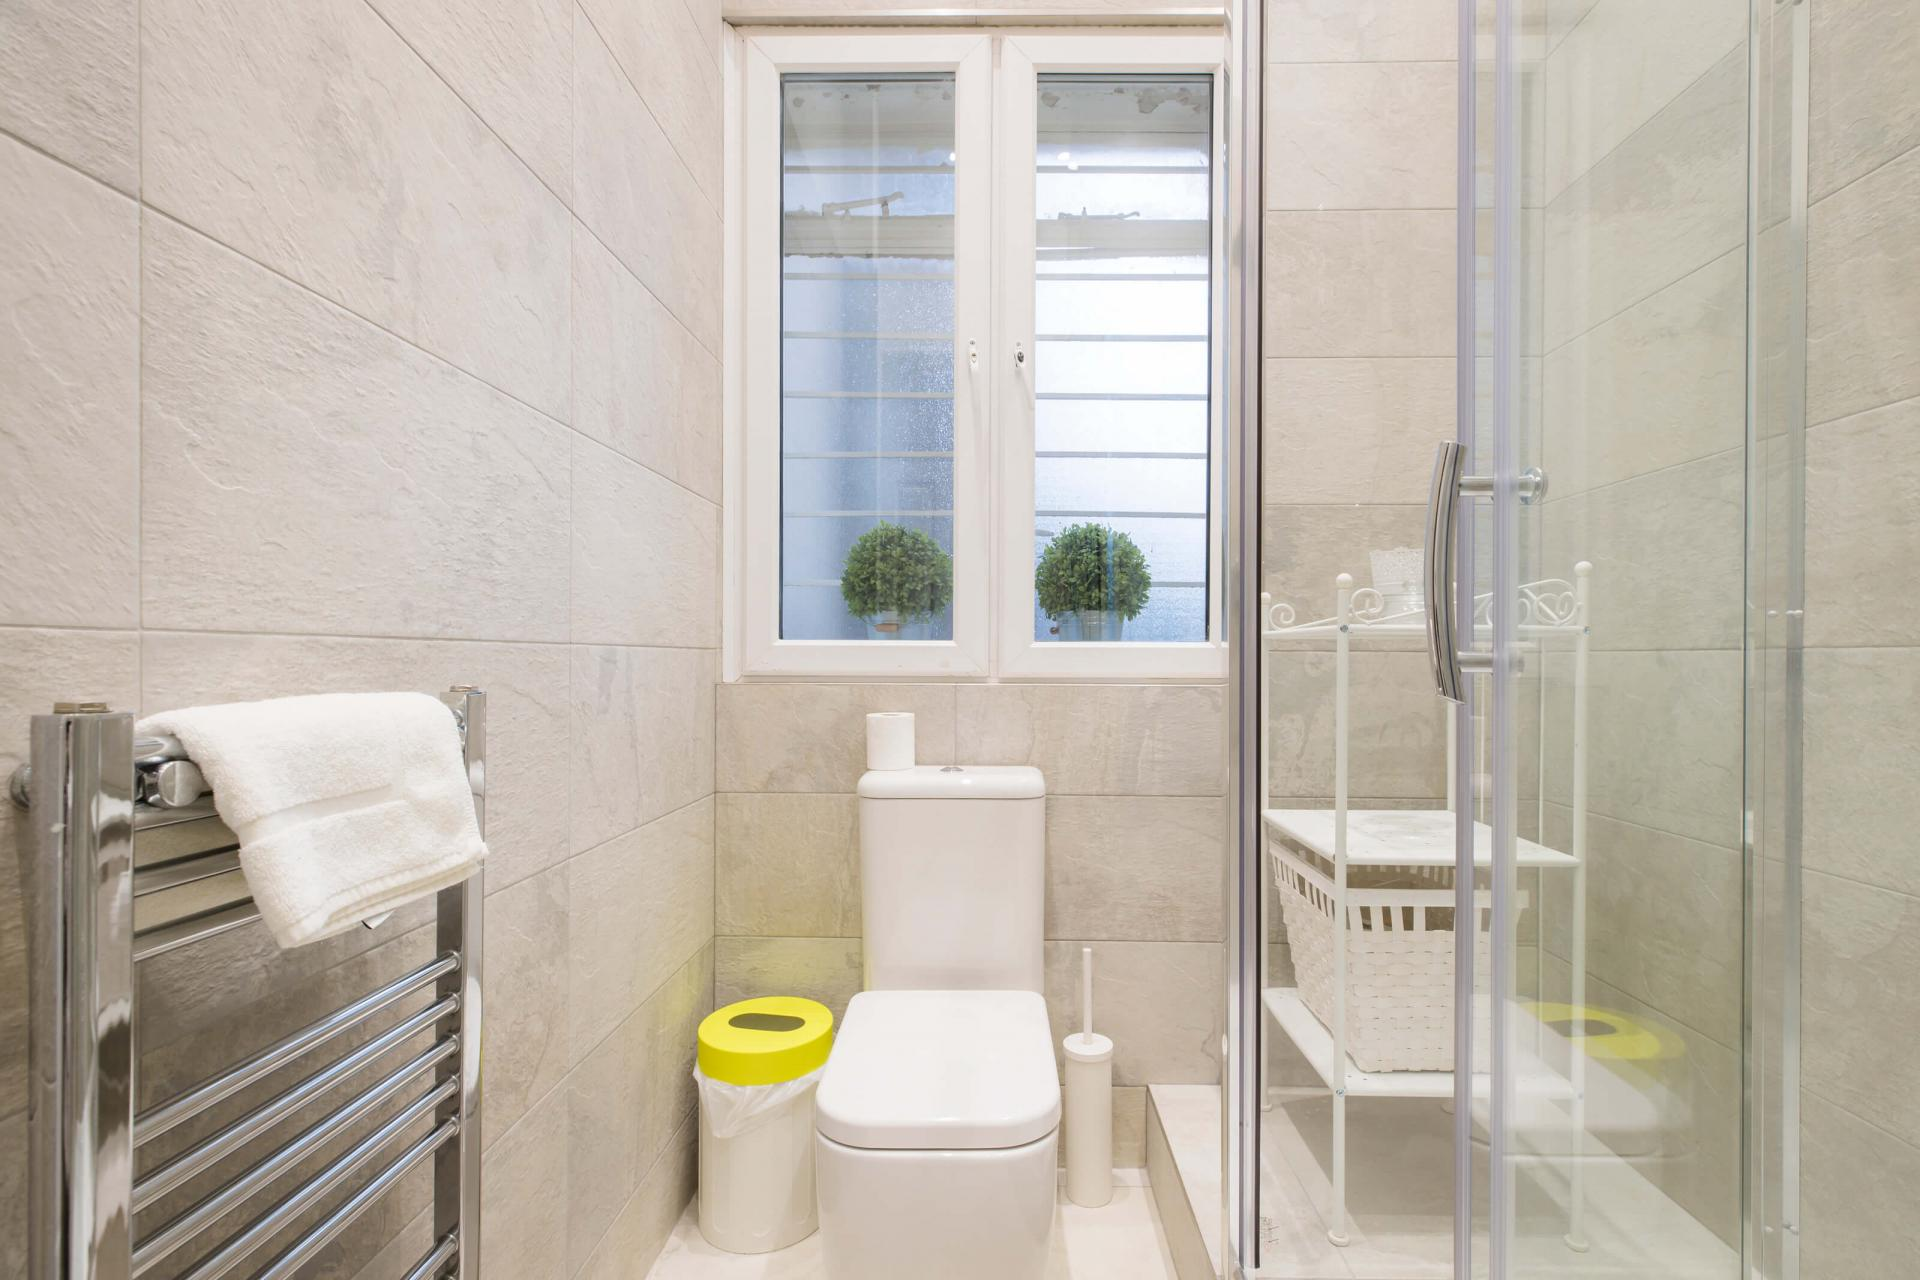 Bathroom at Westbourne Gardens Apartment, Bayswater, London